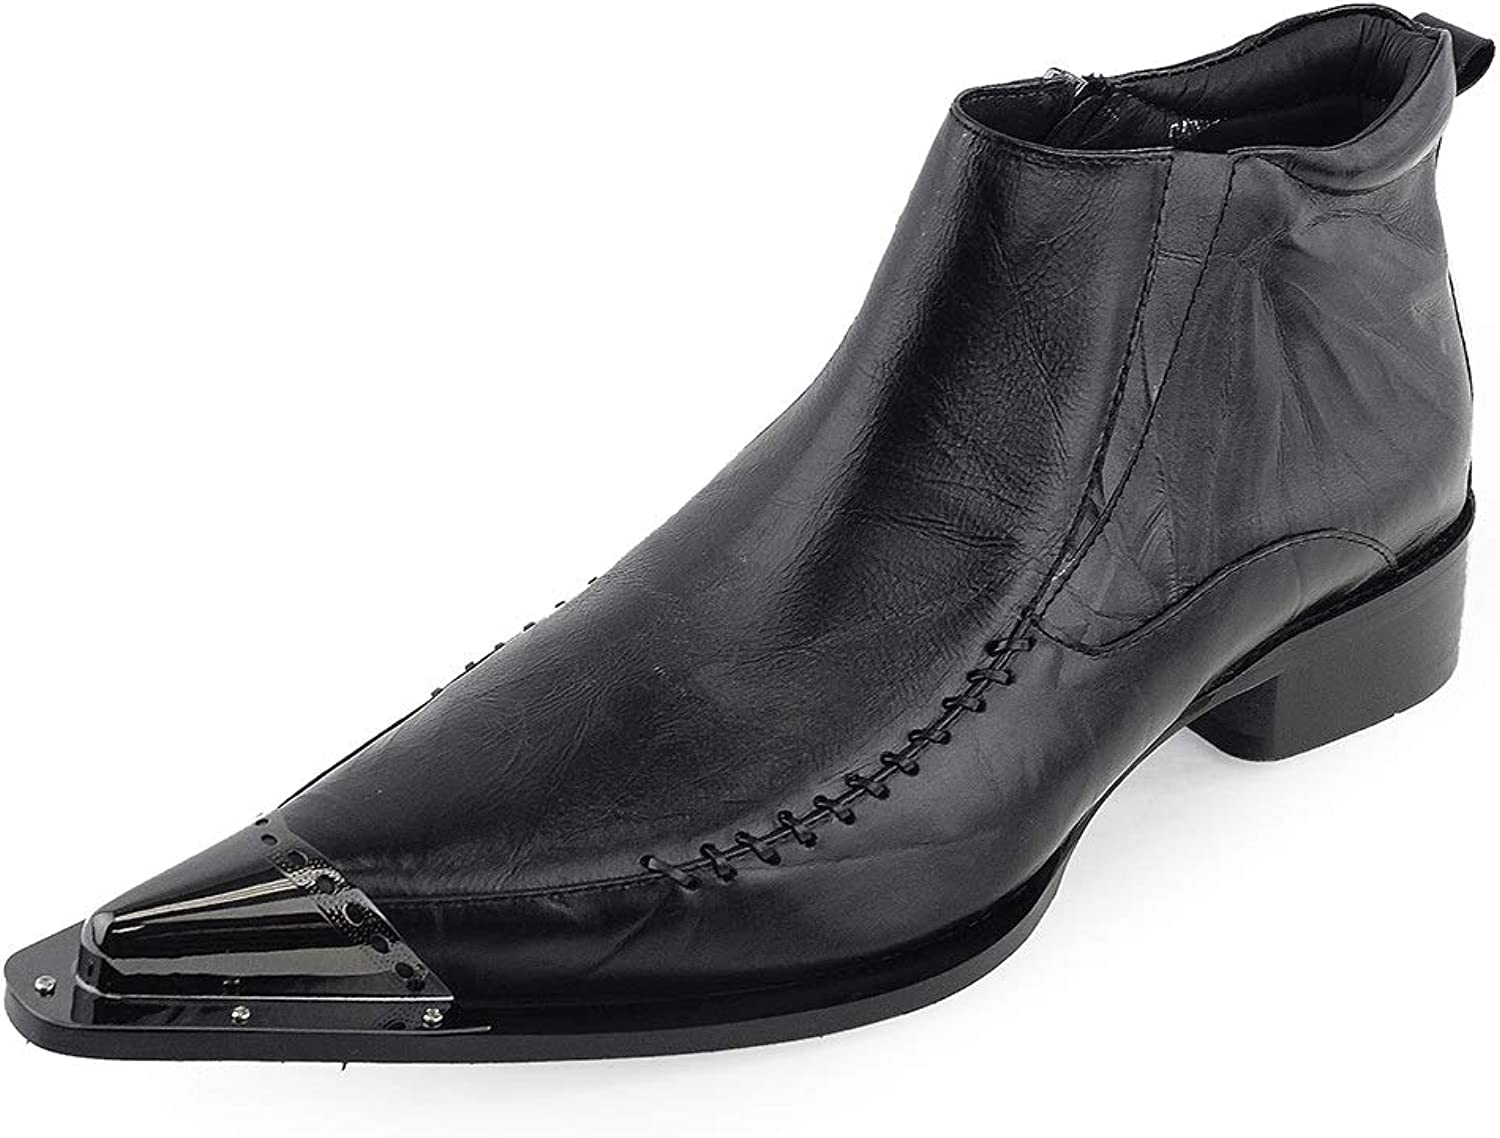 Men's Extravagant Pointed Toe Ankle Boots Metal Toe (color   Black, Size   11.5 UK)